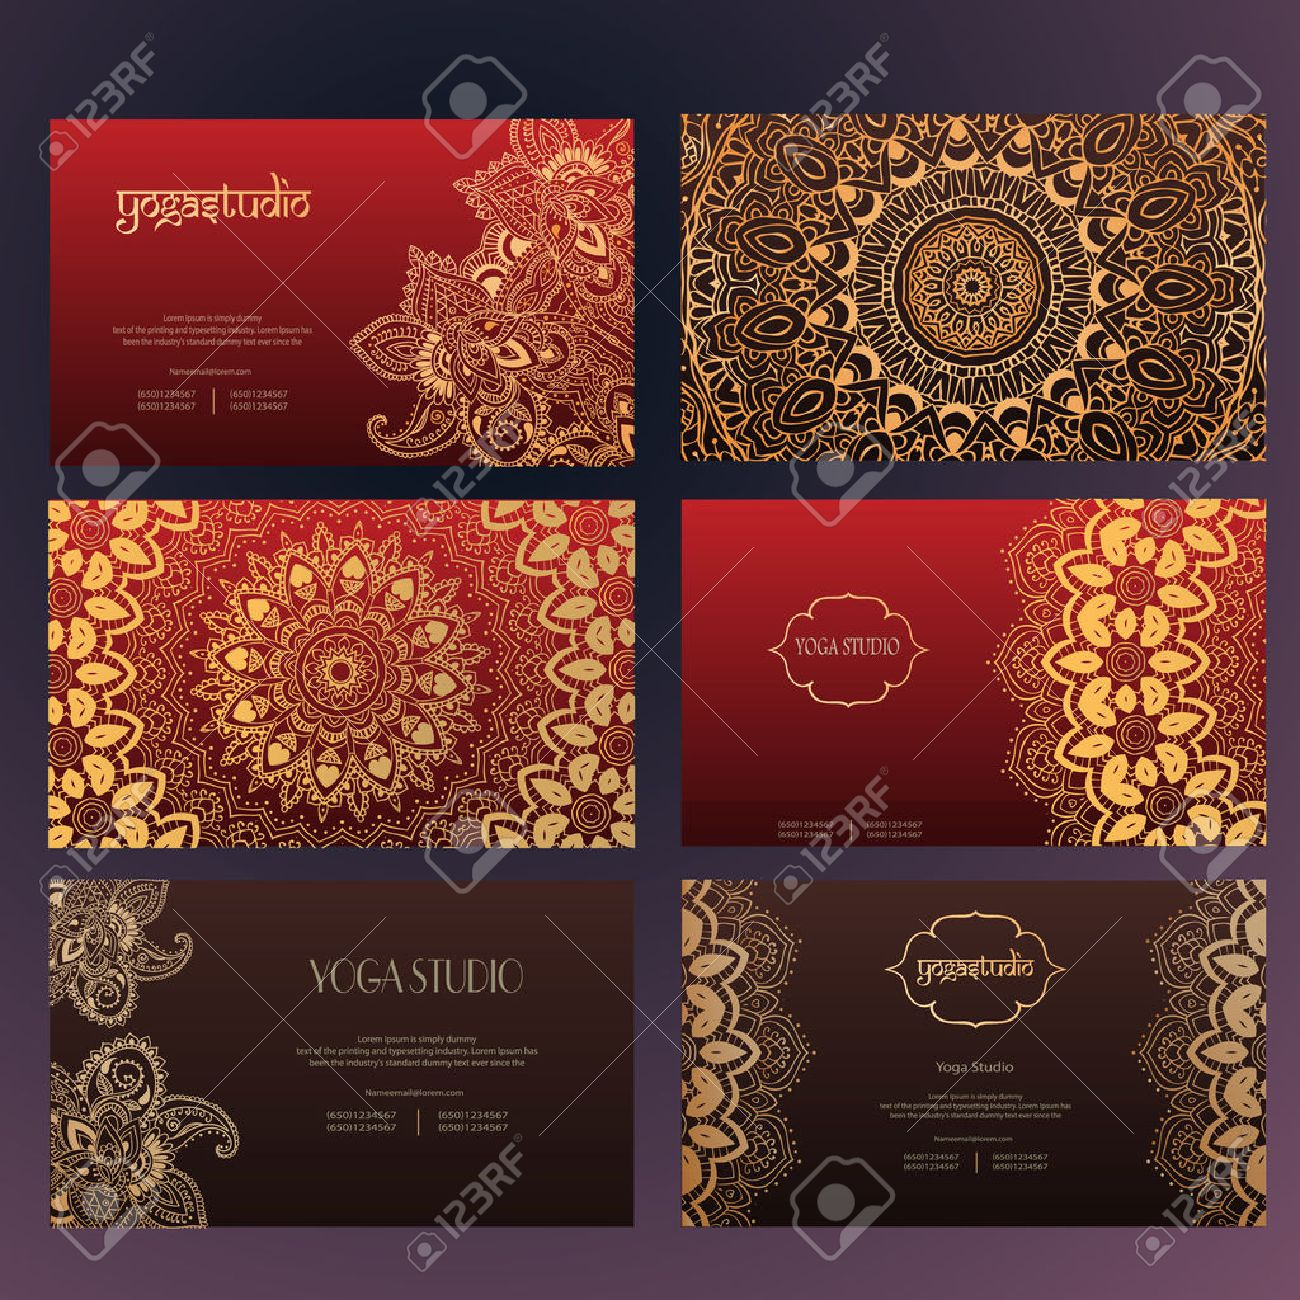 set of business card and invitation card templates lace set of business card and invitation card templates lace or nt yoga center n